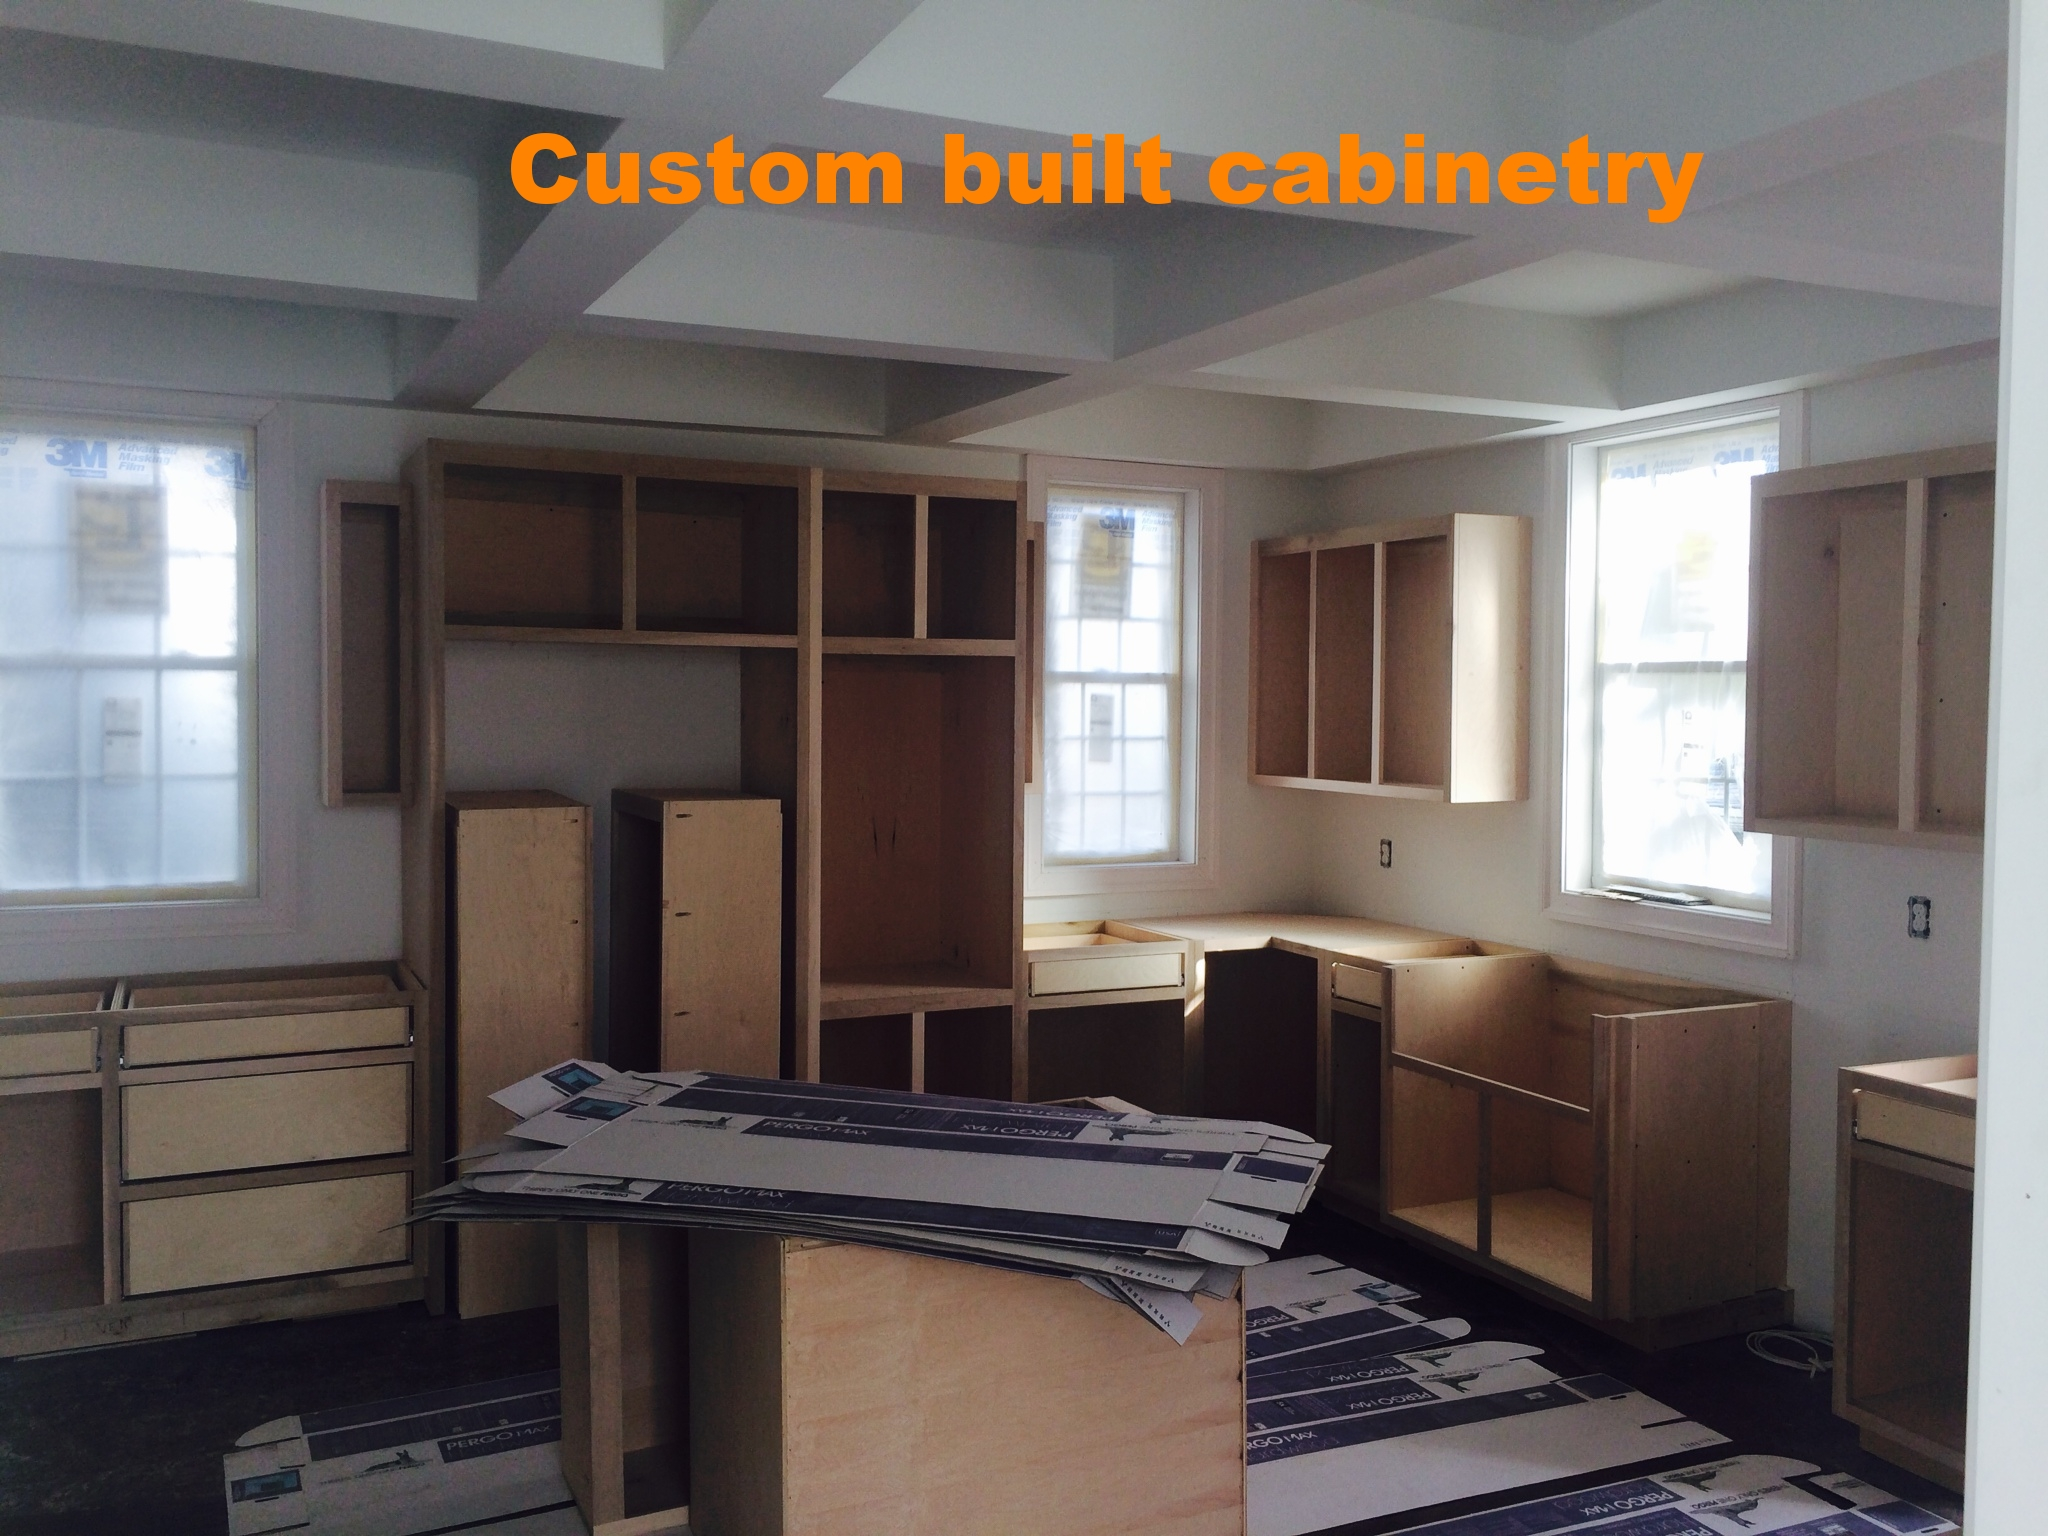 custom kitchen cabinets going in.JPG